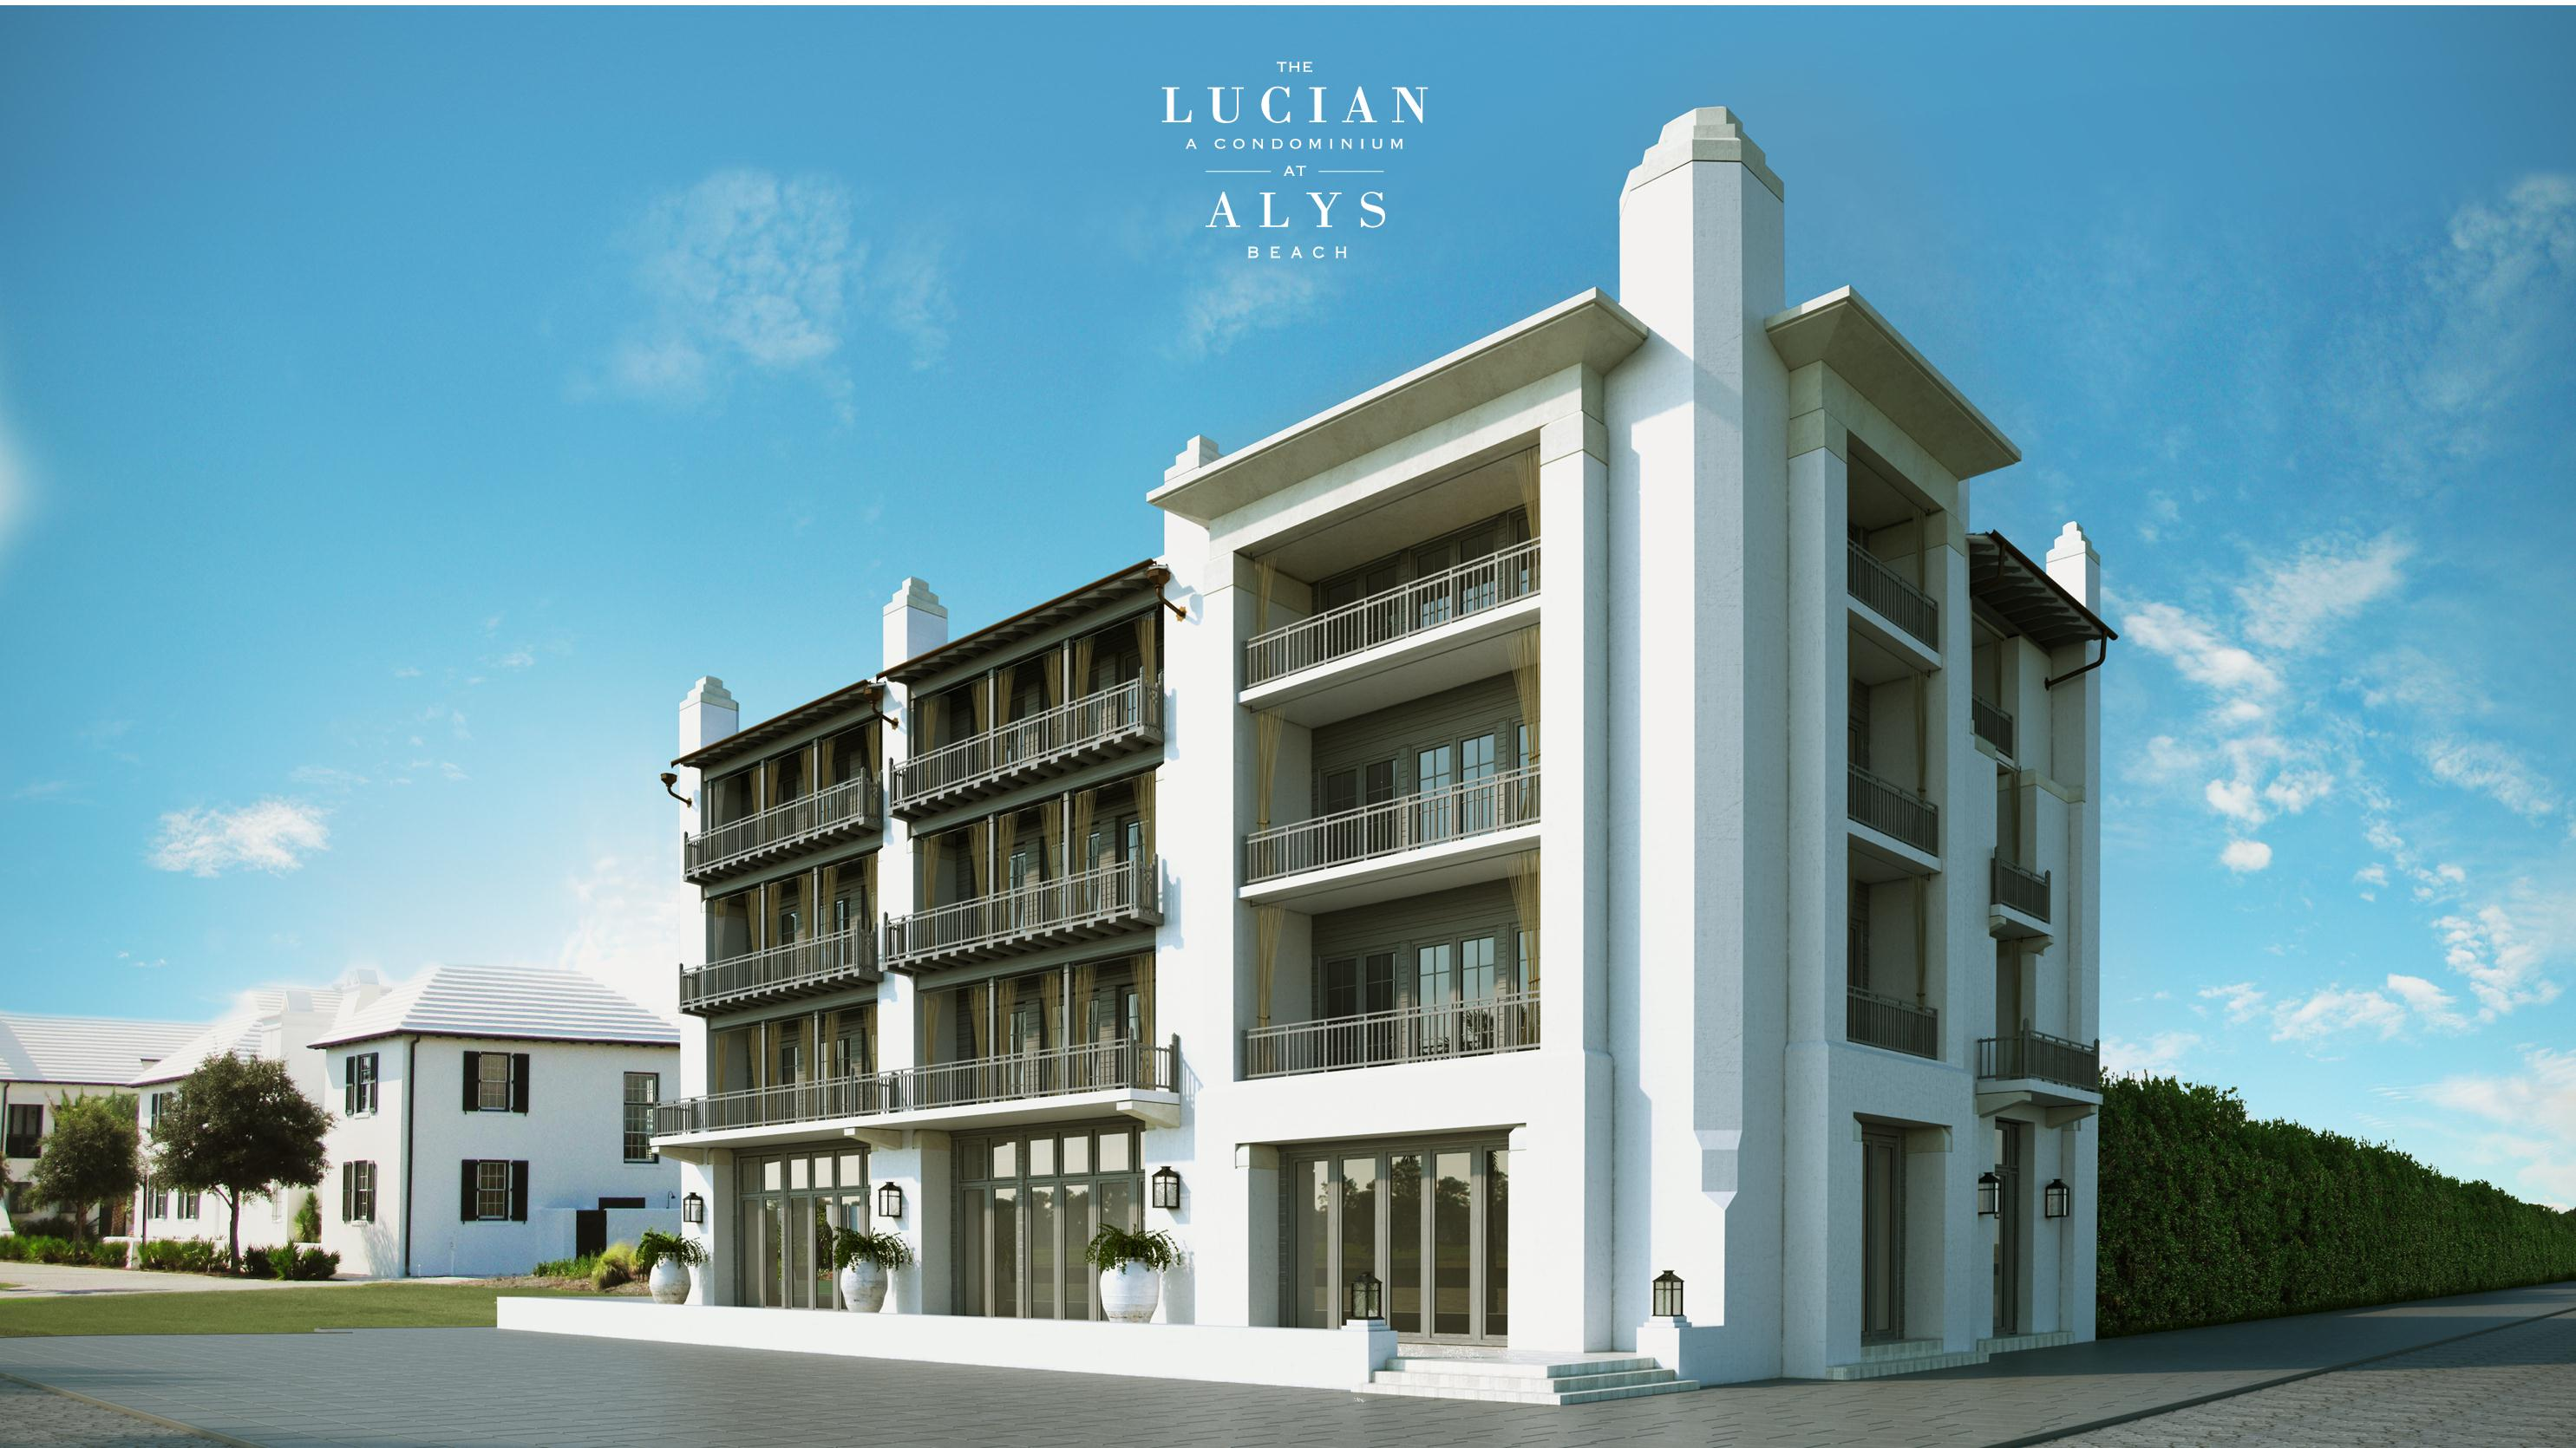 The Lucian at Alys Beach is a pre-construction luxury condo